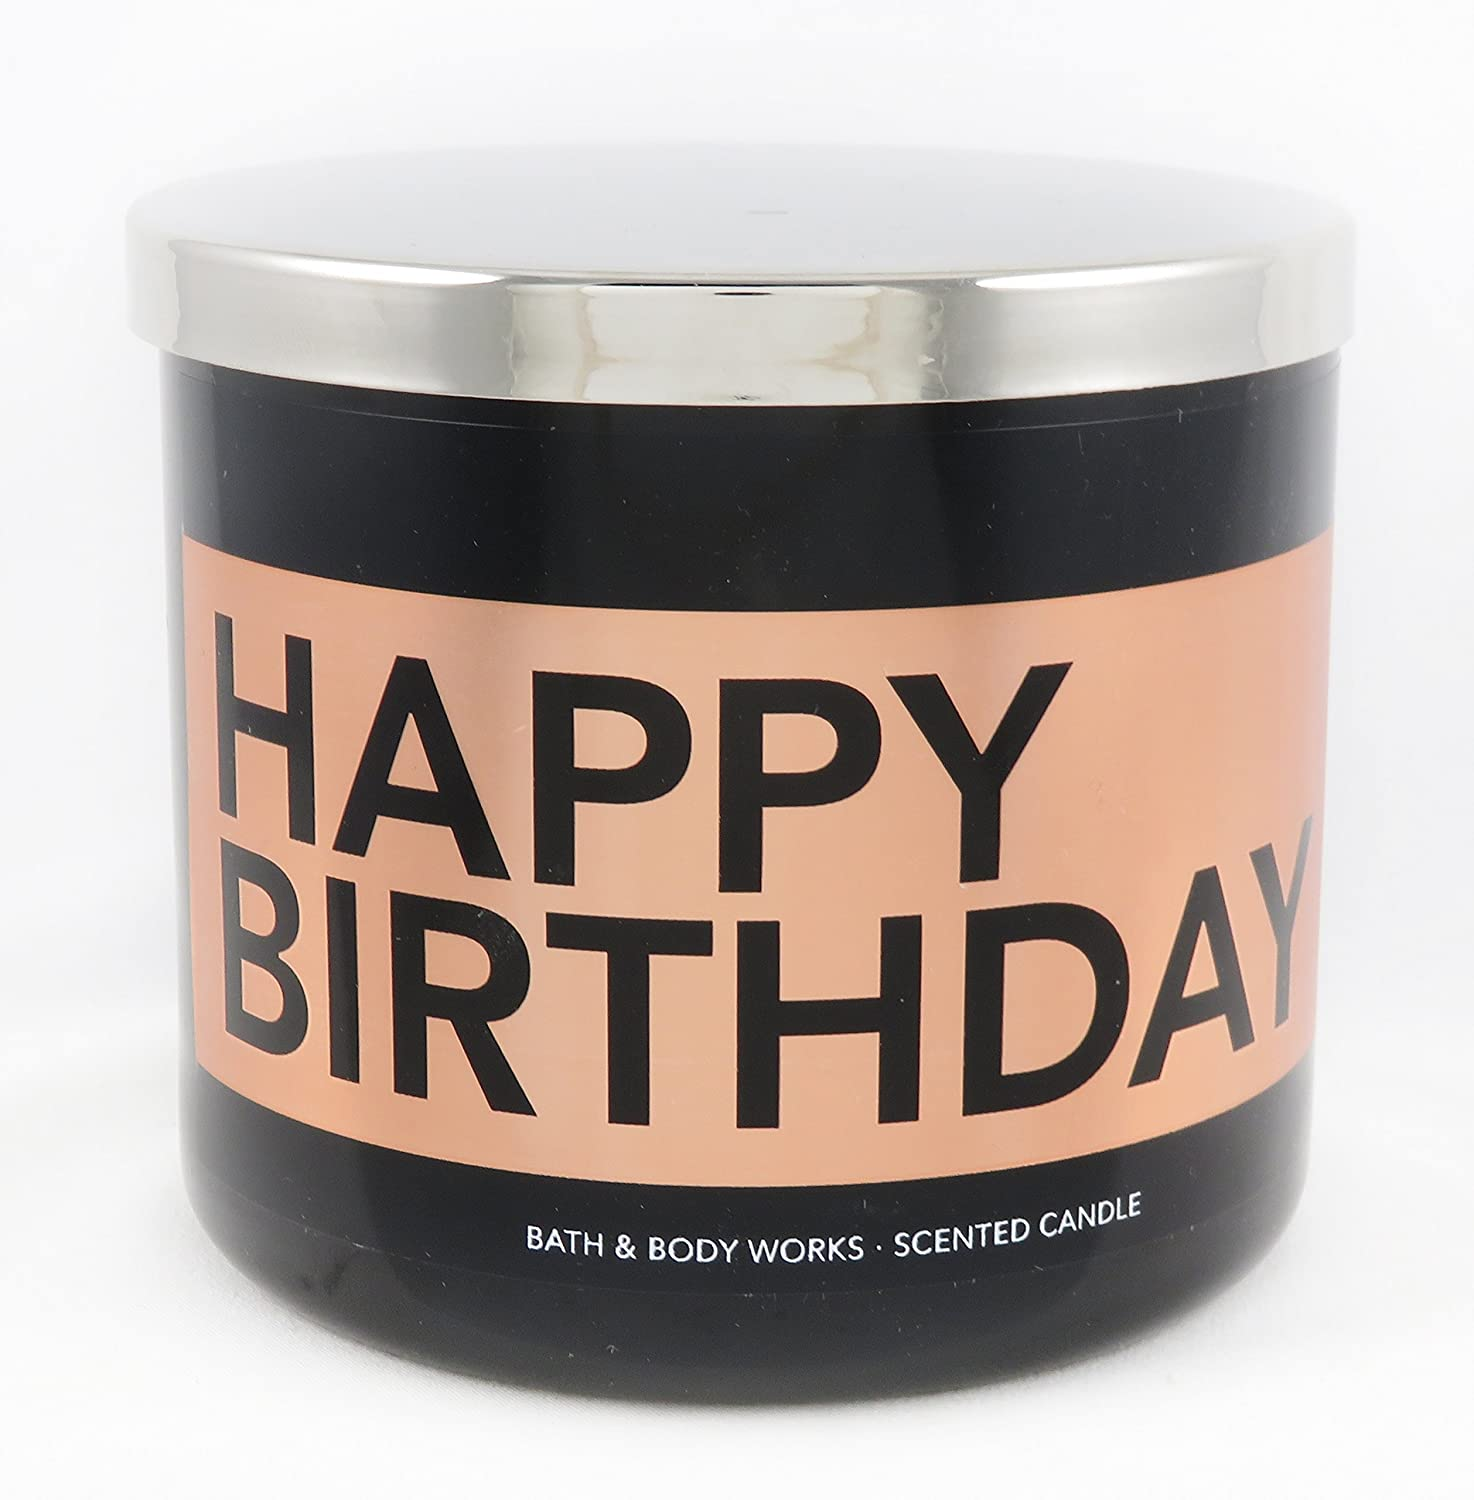 Bath & Body Works Candle 3 Wick 14.5 Ounce Happy Birthday Buttercream Icing